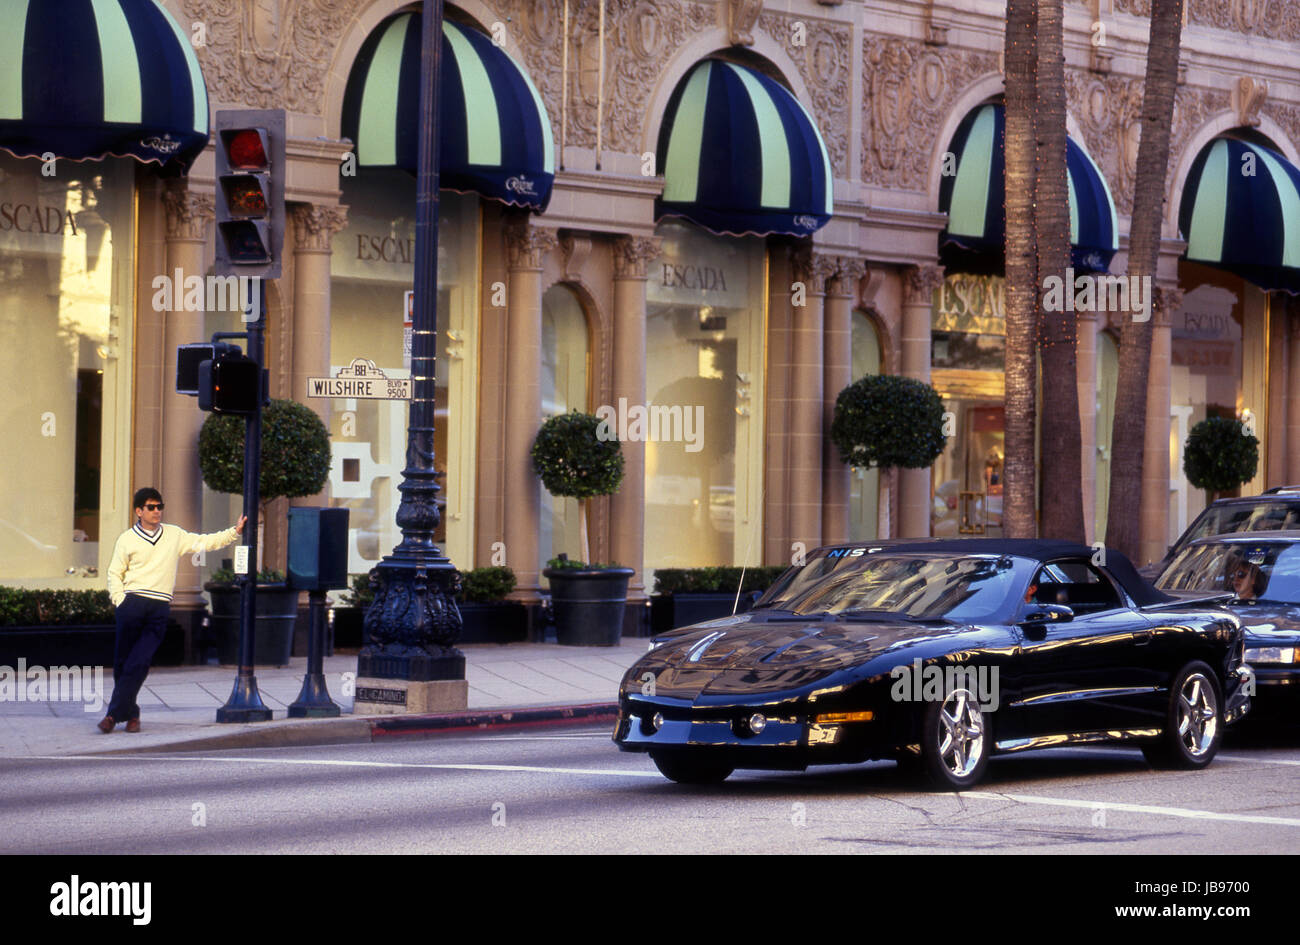 Outside the Beverly Wilshire Hotel at Wilshire Blvd. and Rodeo Dr. in Beverly Hills, CA - Stock Image